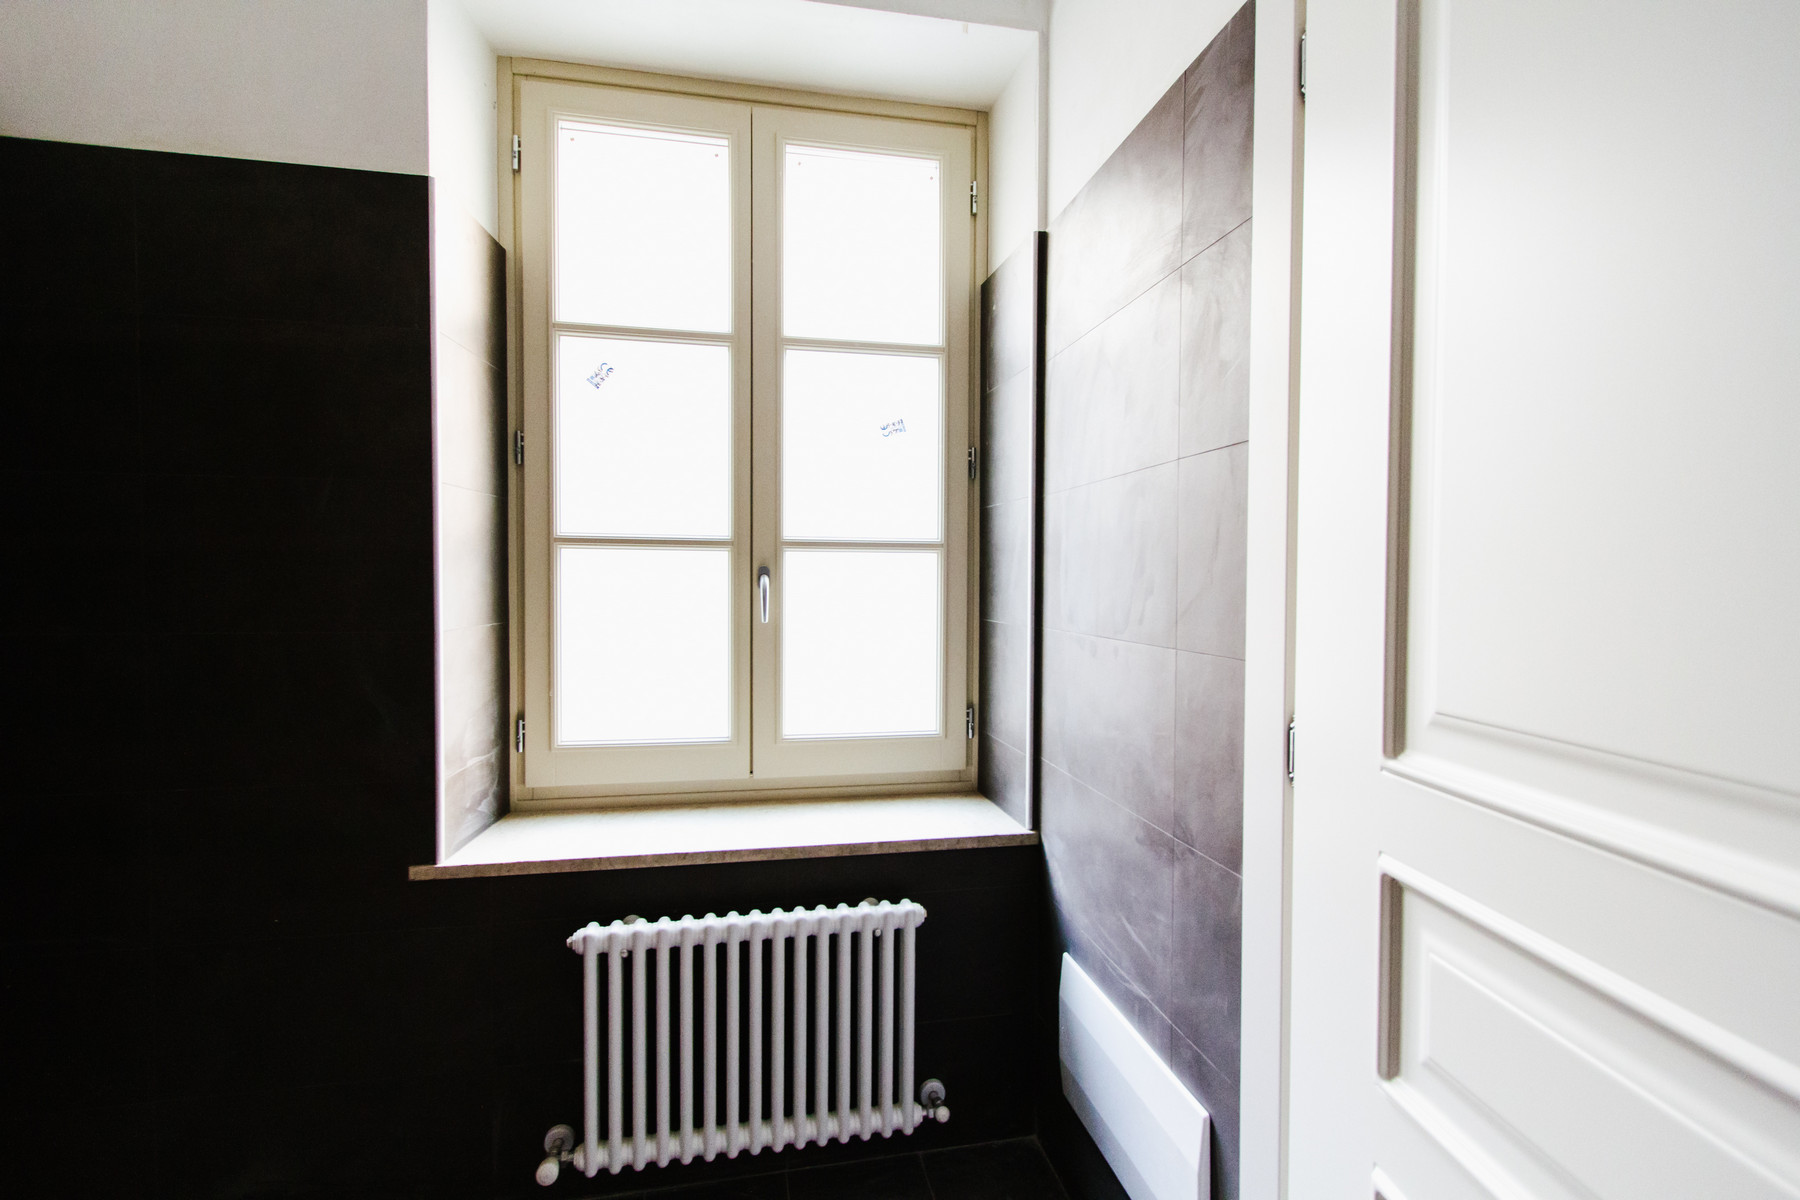 Additional photo for property listing at Modern and luminous apartment in center Piazza Savoia Torino, Turin 10122 Italy